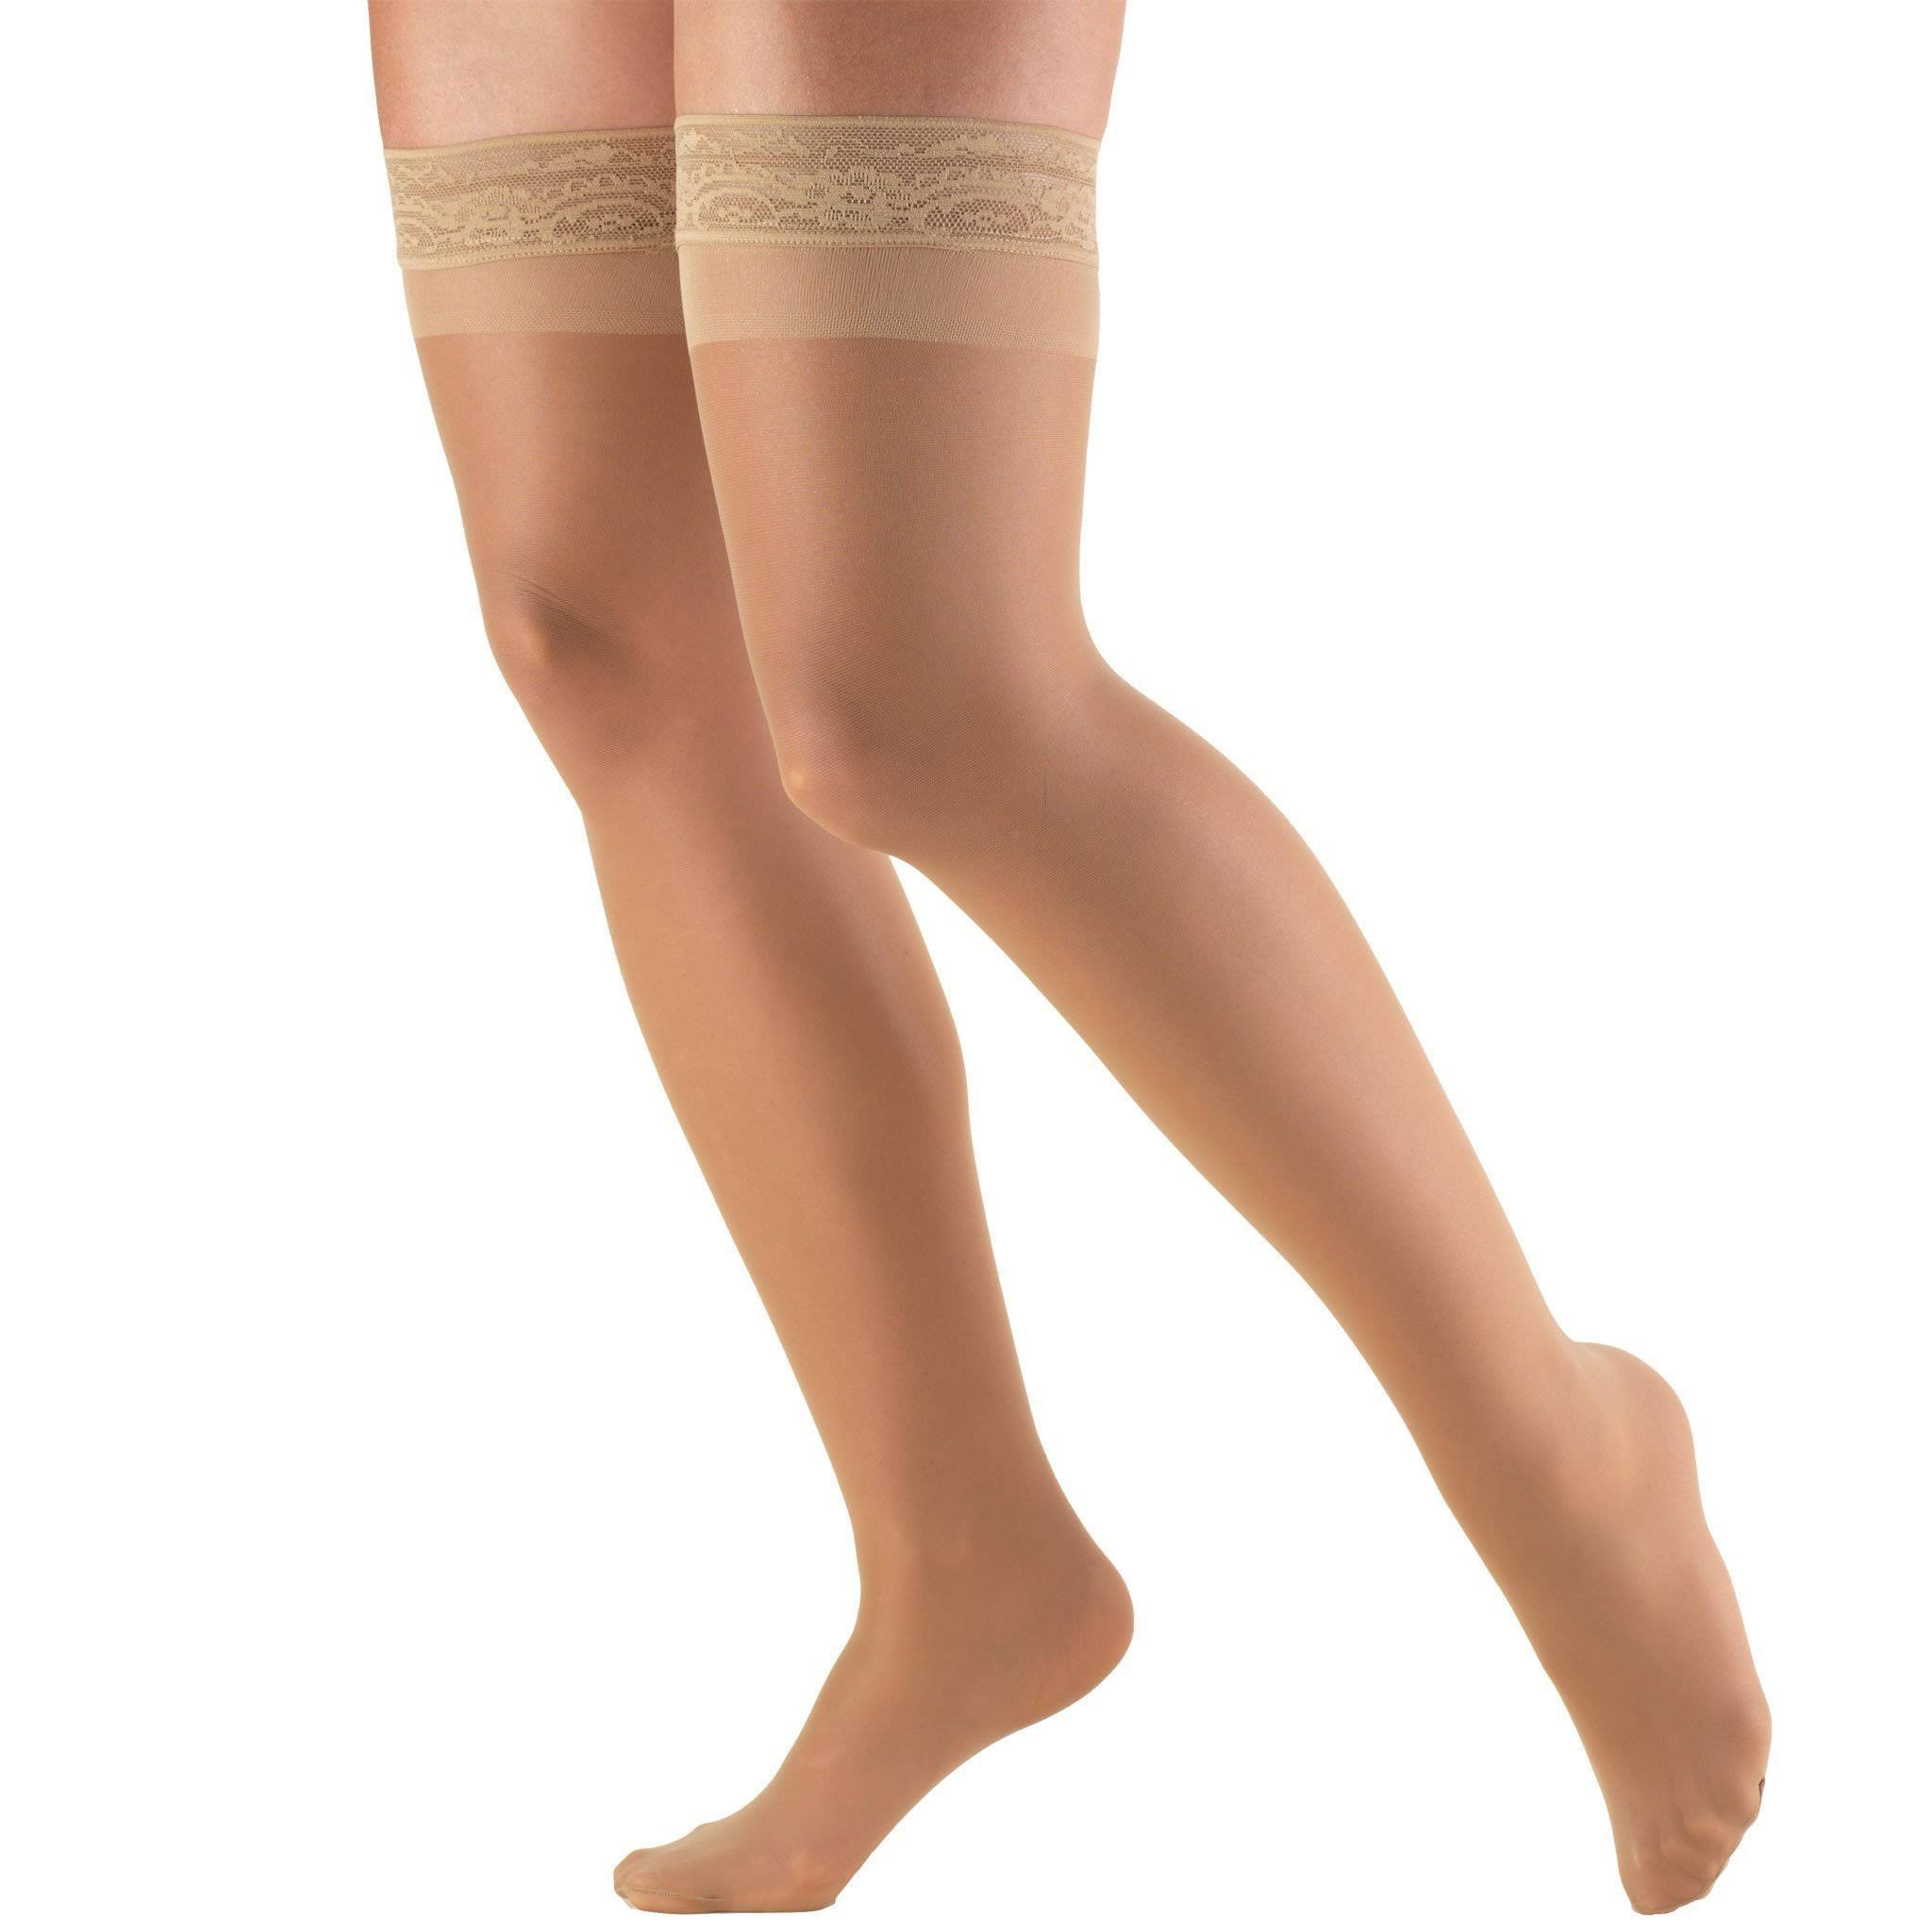 Truform Women's 8-15 mmHg Sheer Thigh High Compression Stockings - Beige, M